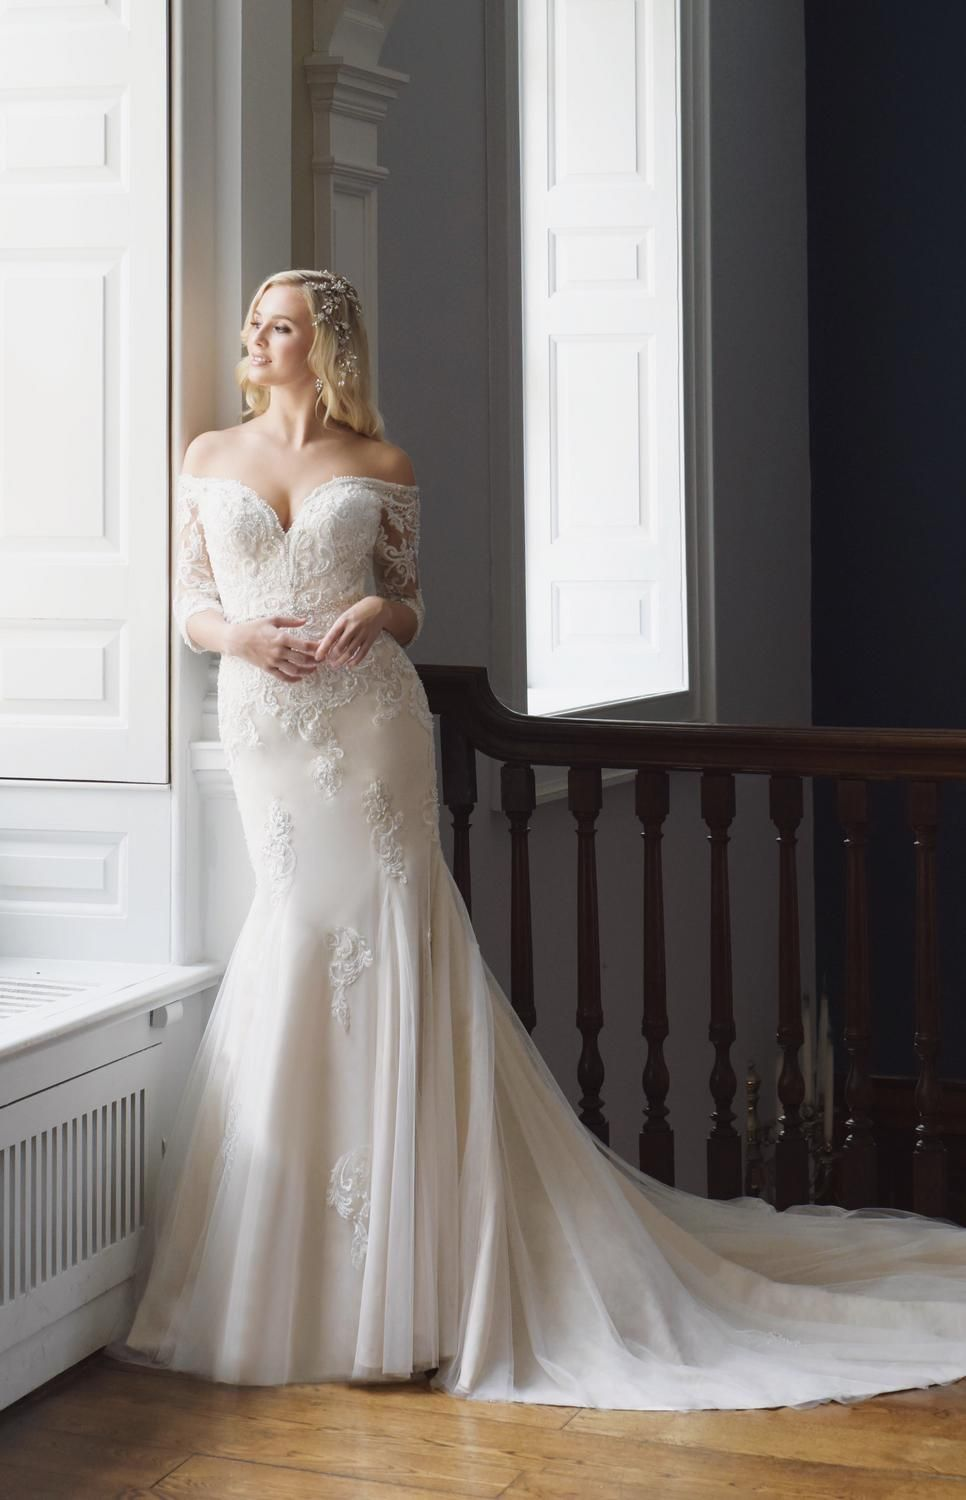 Anais Off The Shoulder Lace Wedding Dress With Sleeves True Bride This Beautiful Fishtail Dre Wedding Dress Outlet Lace Fishtail Wedding Dress True Bride [ 1500 x 966 Pixel ]